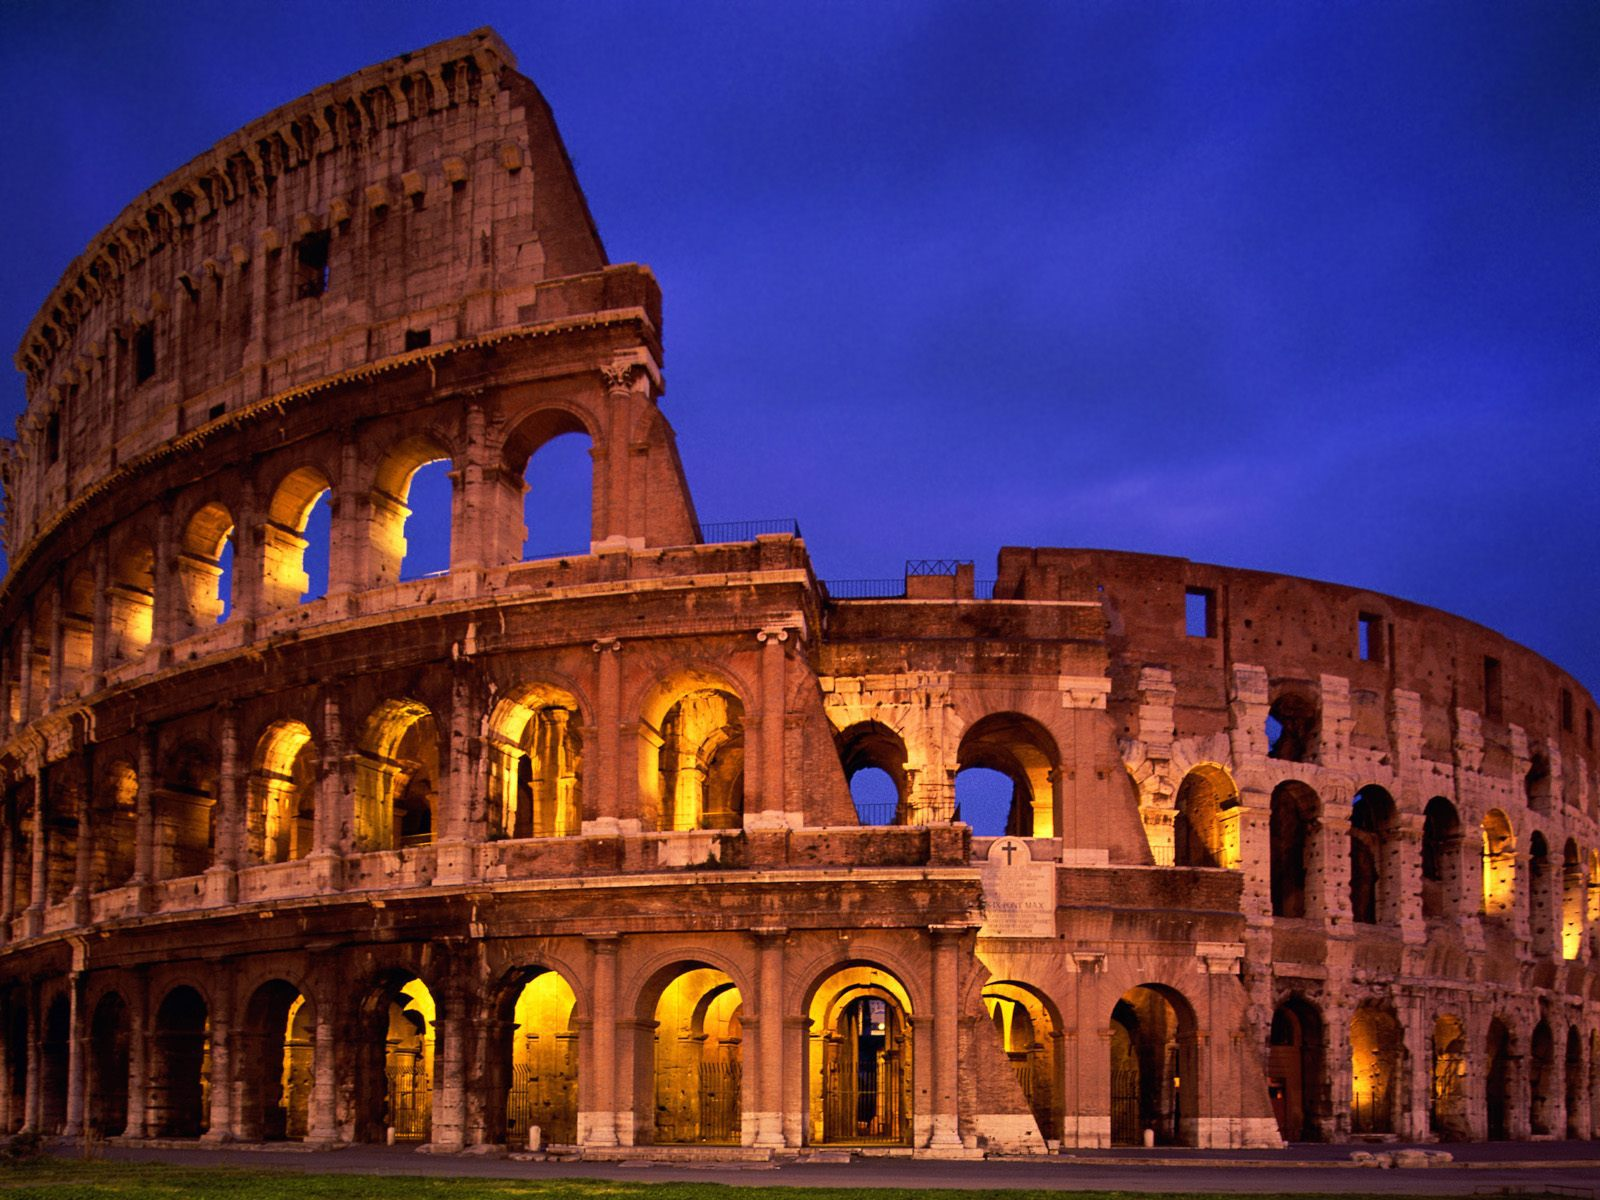 Hotels near The-Colosseum-Rome-Italy